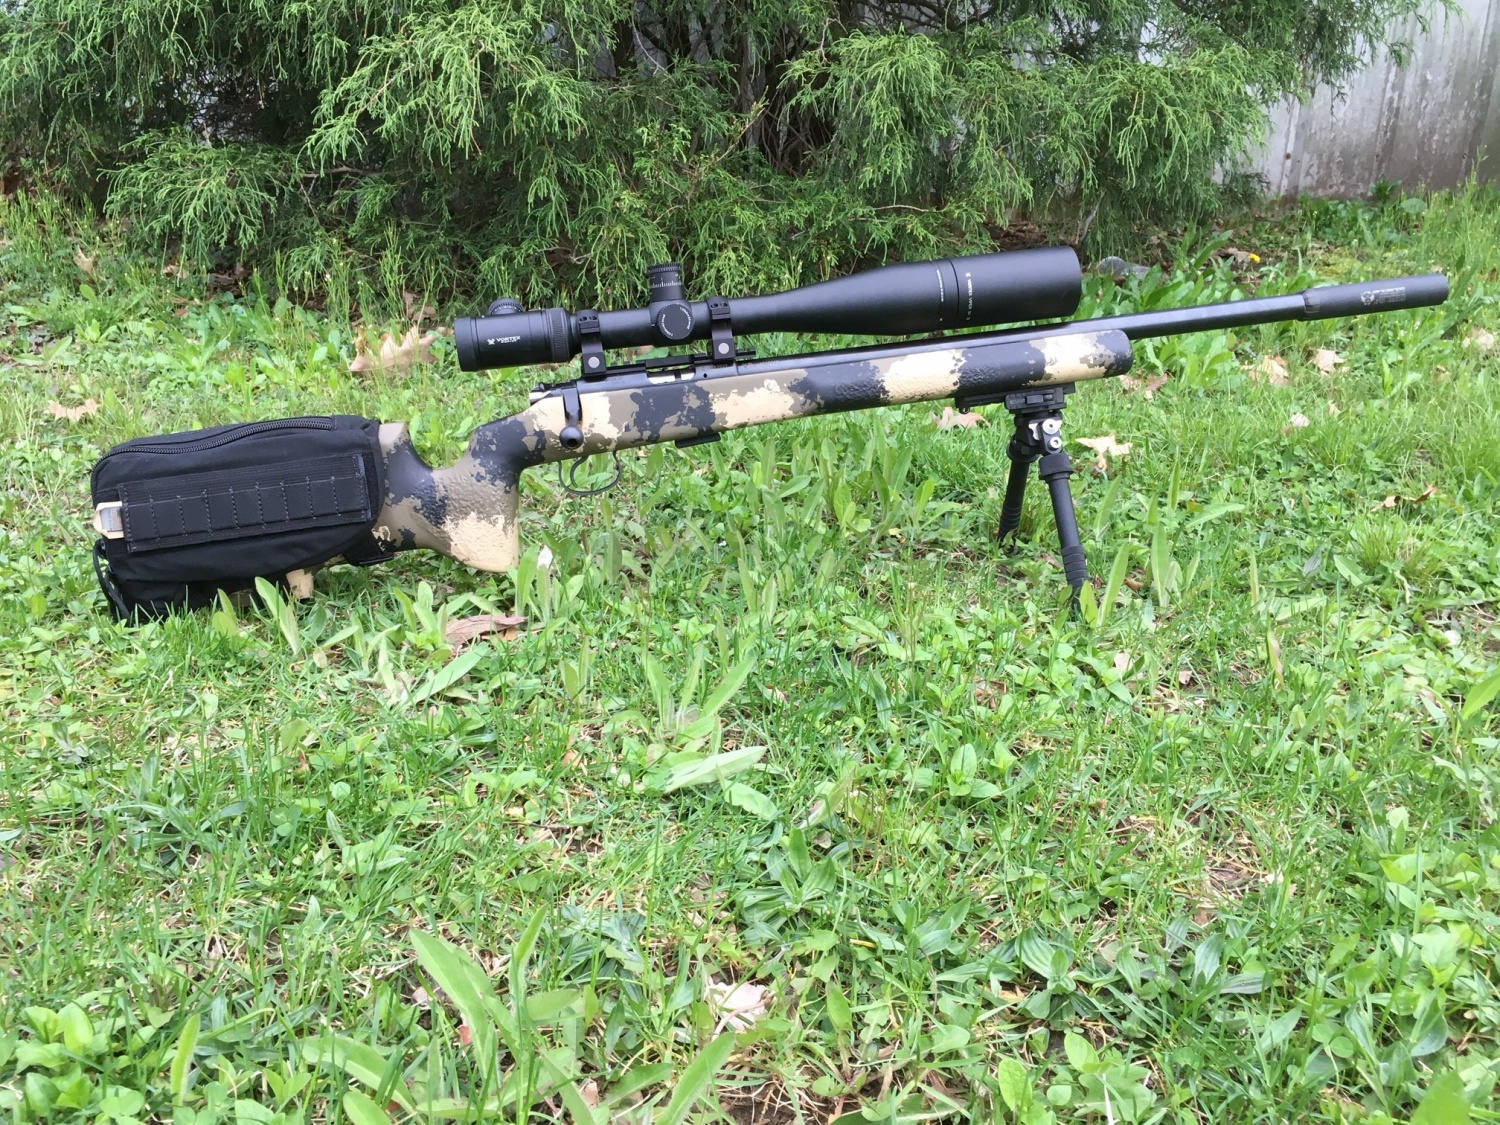 Cz 455 varmint review youtube - It Comes With That Camouflaged Manners Stock Made For The Cz 455 He Mounted A Viper Pst 6 24x Scope And A Bt Industries Atlas Bipod